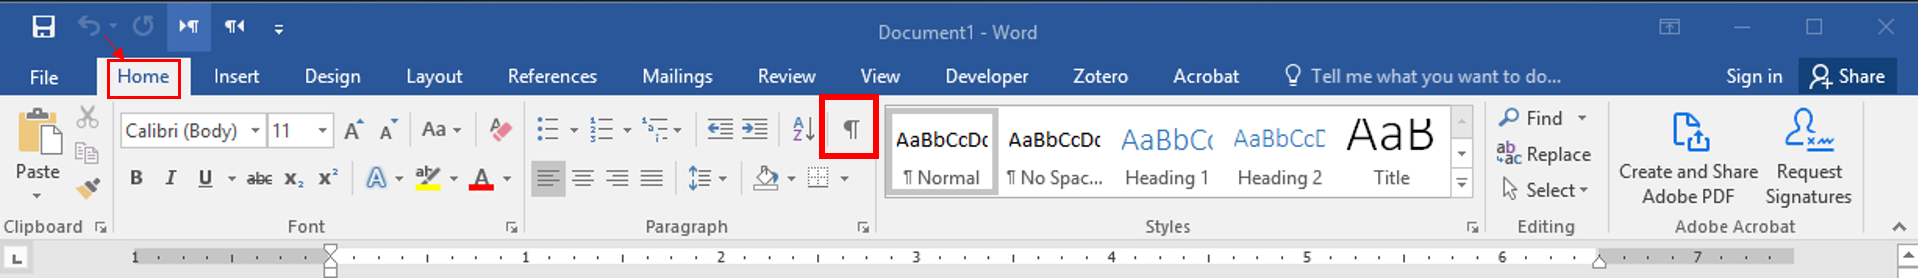 nonprinting characters is a backward P located under the home tab